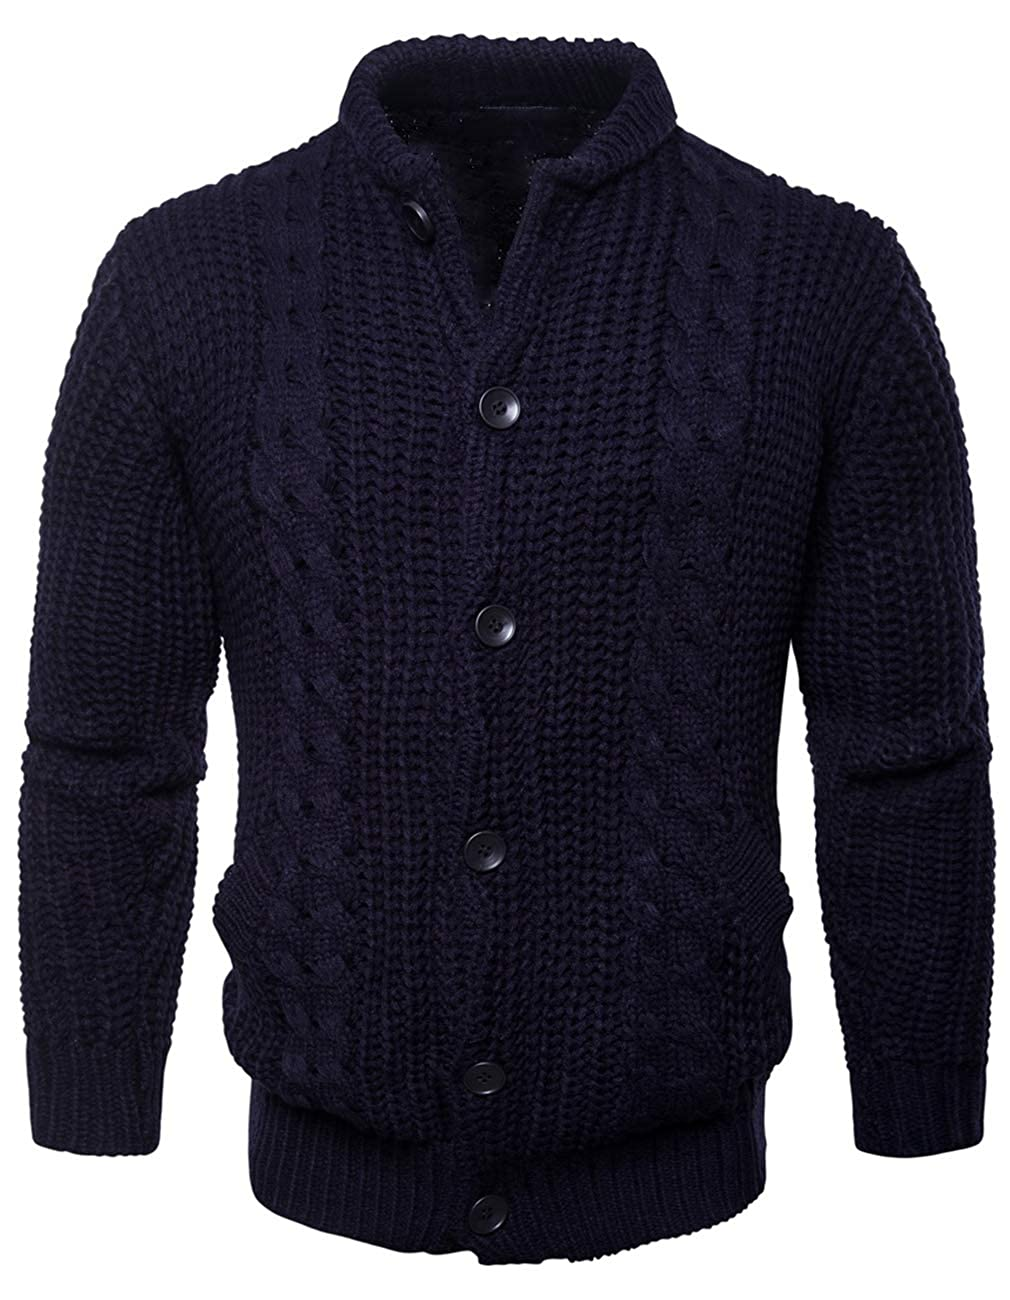 YIMANIE Mens Casual Knitwear Stand Collar Cardigan Long Sleeve Button Down Sweater